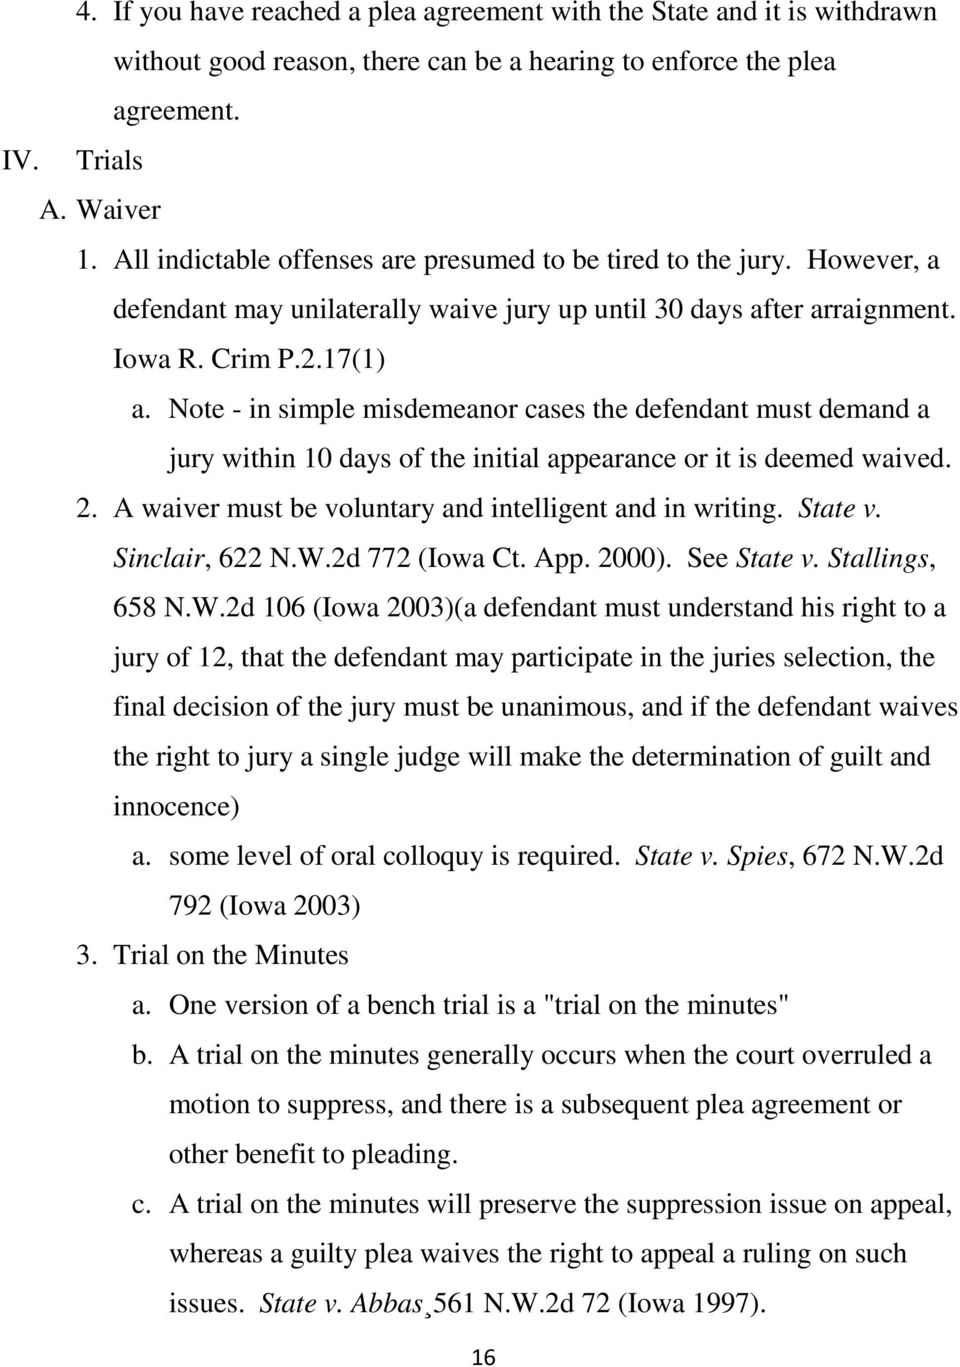 Note - in simple misdemeanor cases the defendant must demand a jury within 10 days of the initial appearance or it is deemed waived. 2. A waiver must be voluntary and intelligent and in writing.